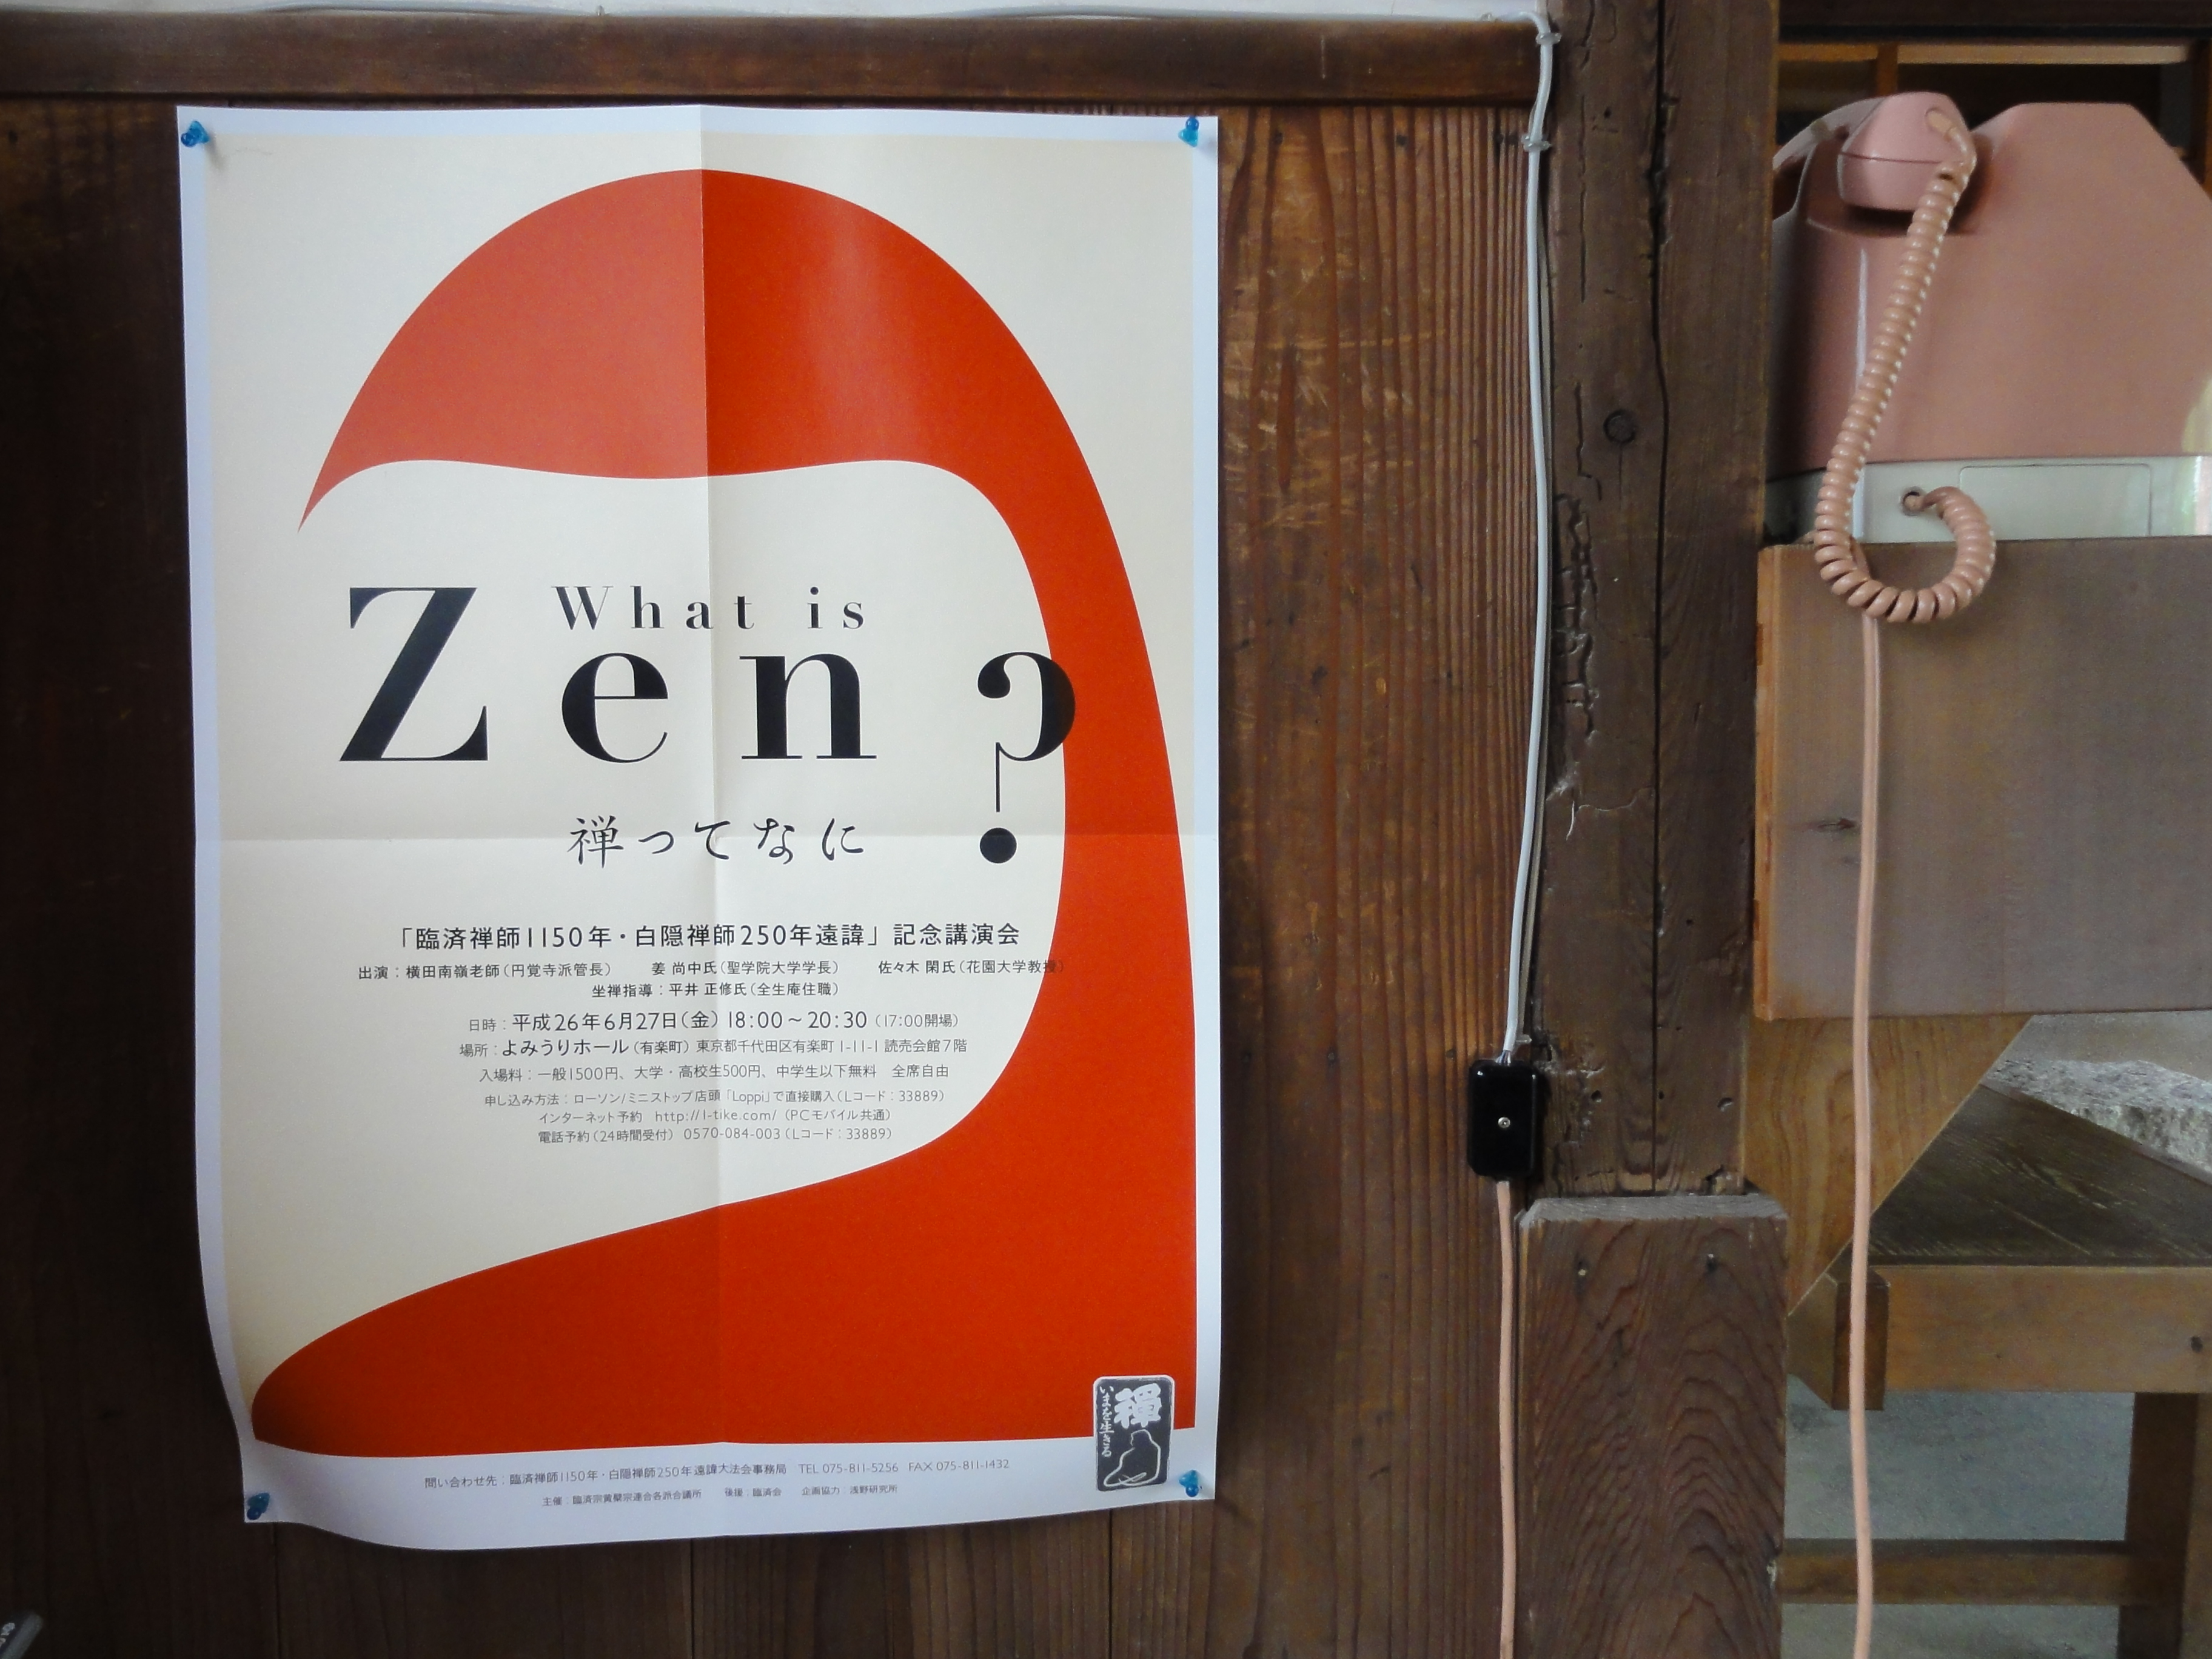 learn-kanji-Japanese-sign-daruma-san-zen-283a